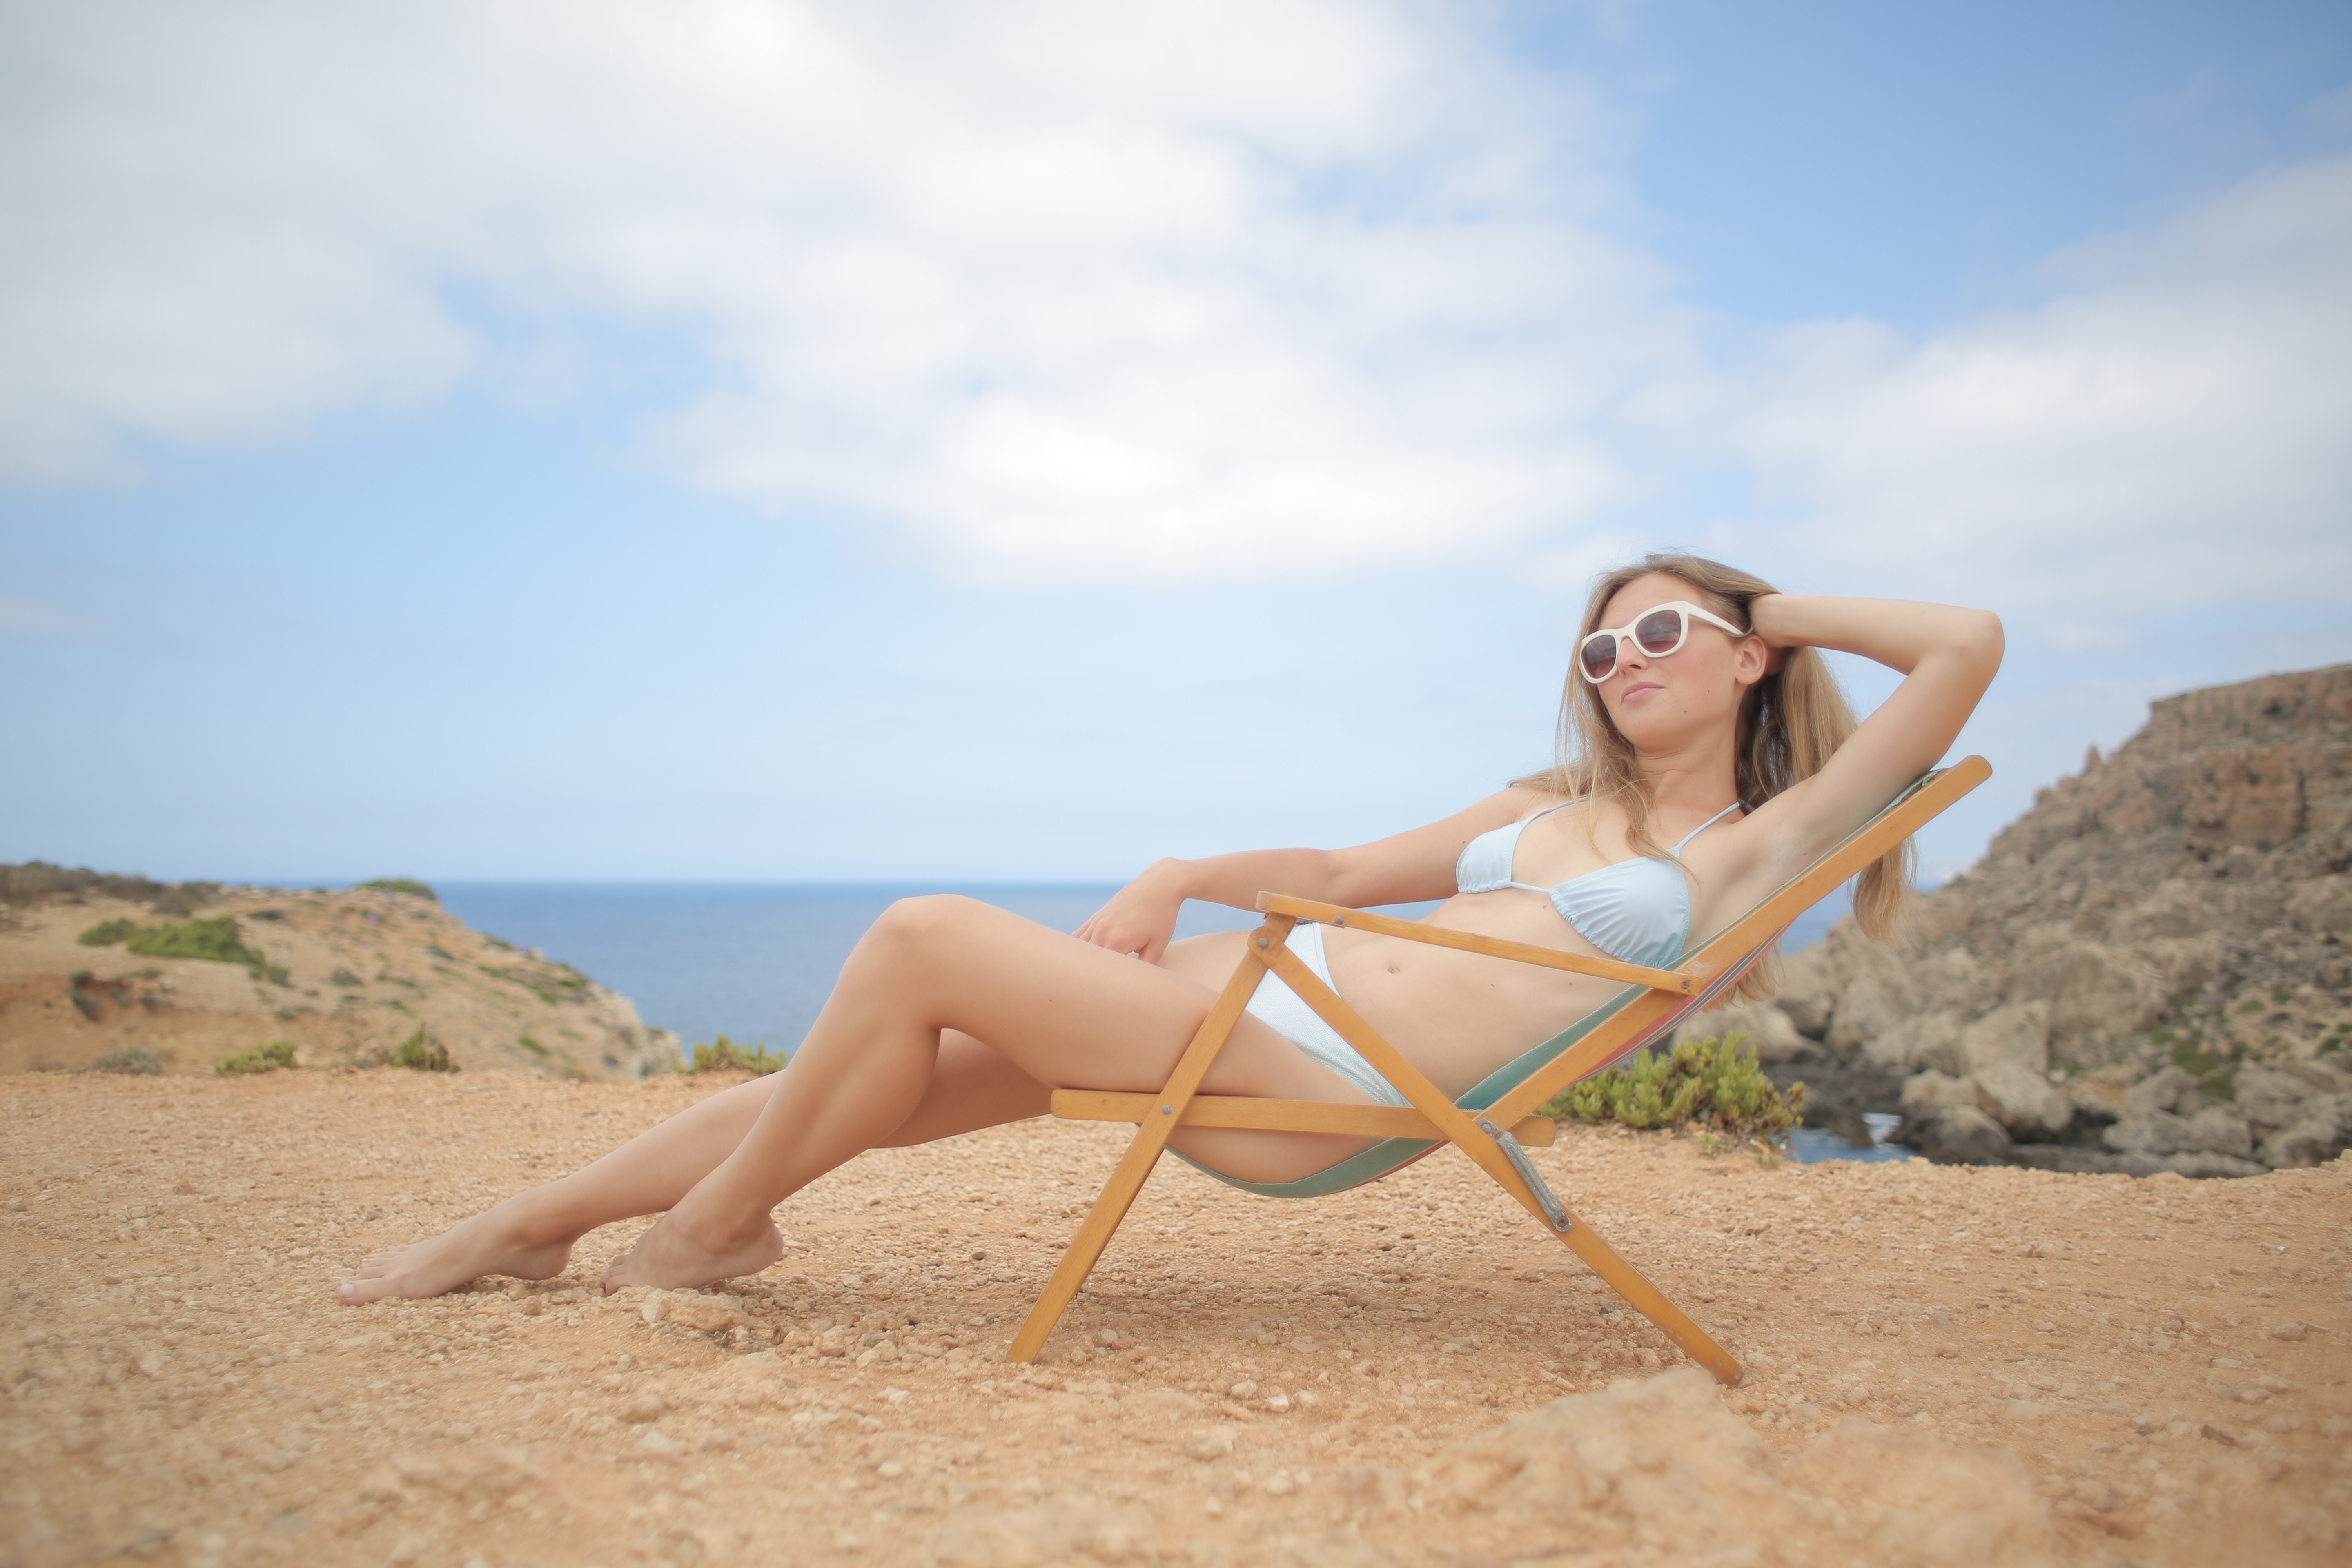 Woman In Blue Swimsuit Sitting On Wooden Beach Chair Free Stock Photo